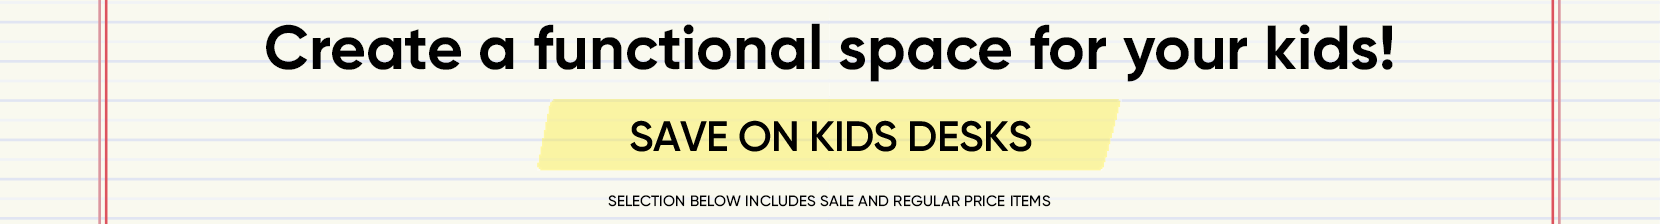 create a fun study space for your kids! save on kids desks. selection below includes sale and regular price items